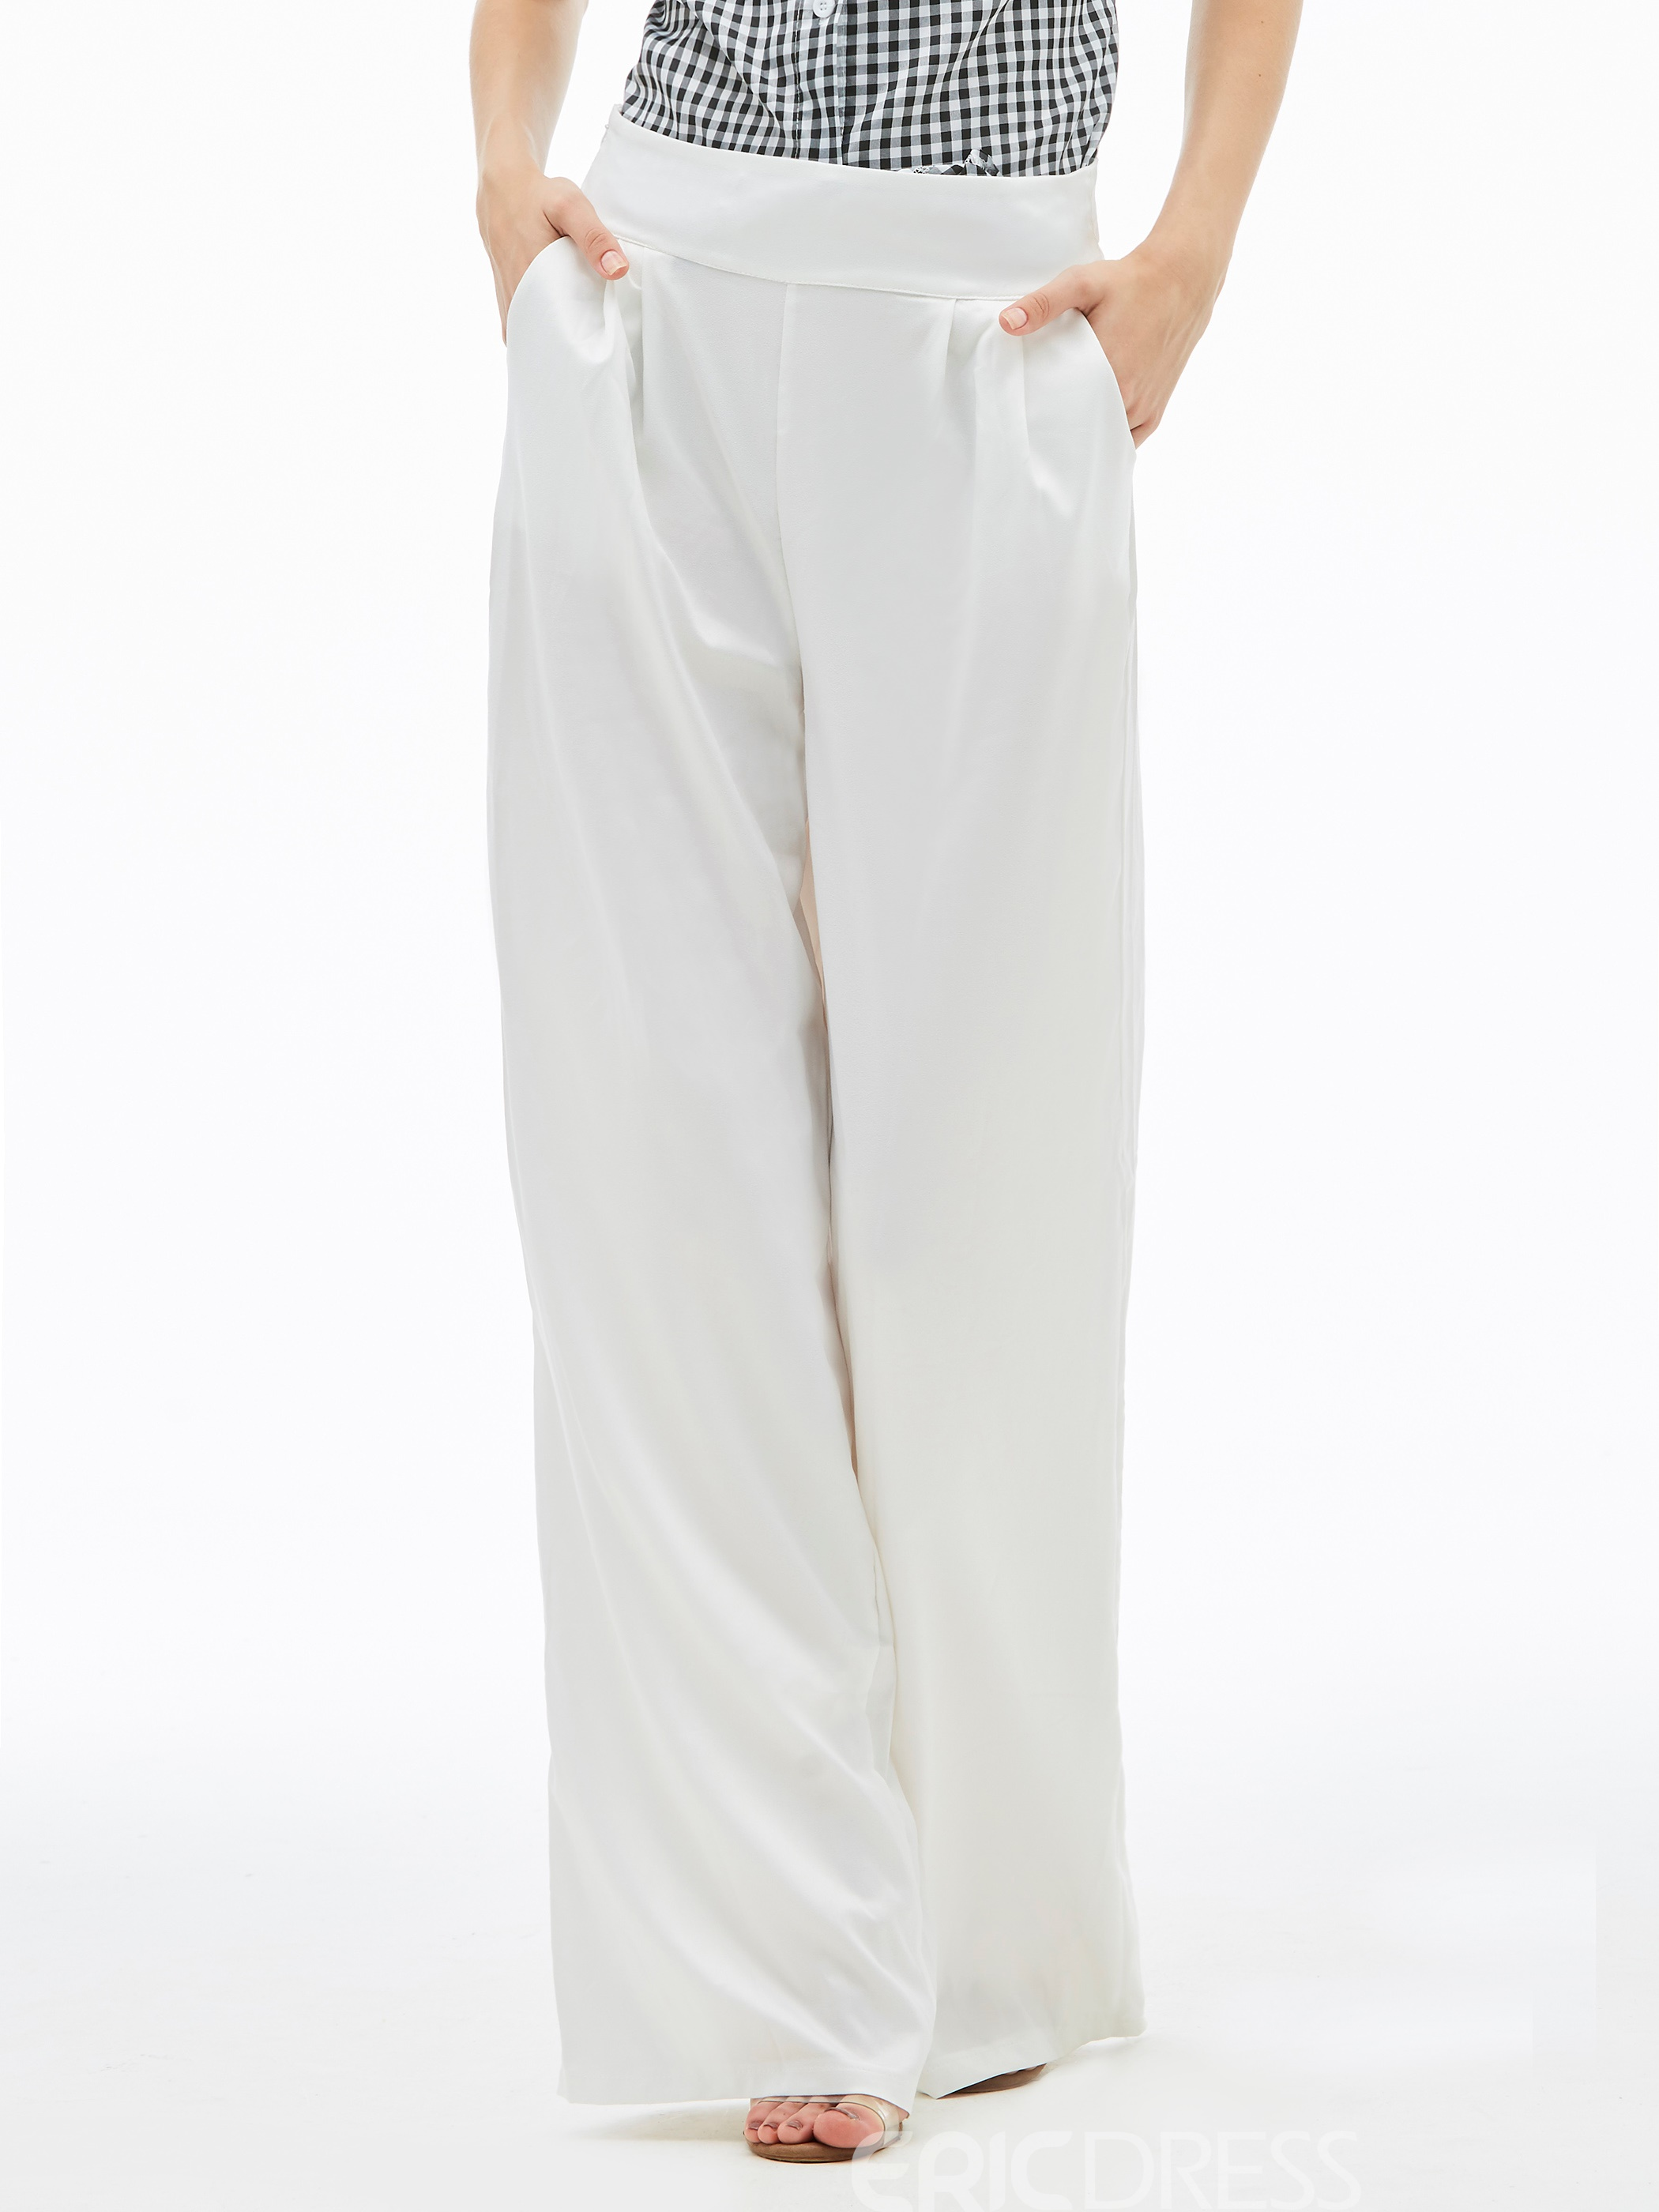 Loose High-Waist Wide Legs Women's Pants